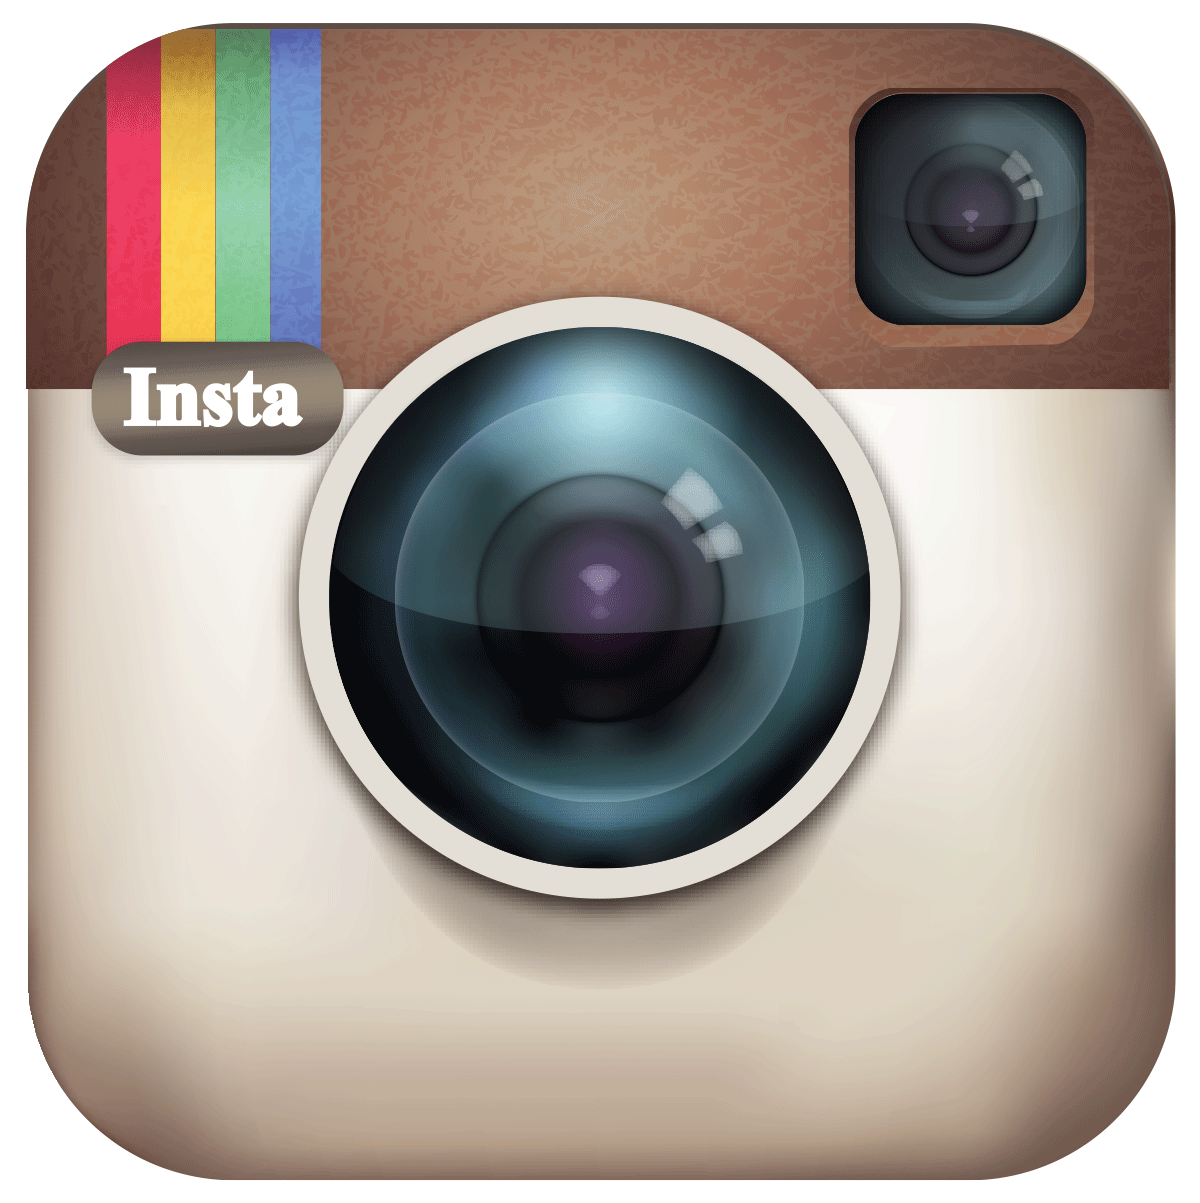 logo 2012 instagram adds 50 million photos in august instagram logo